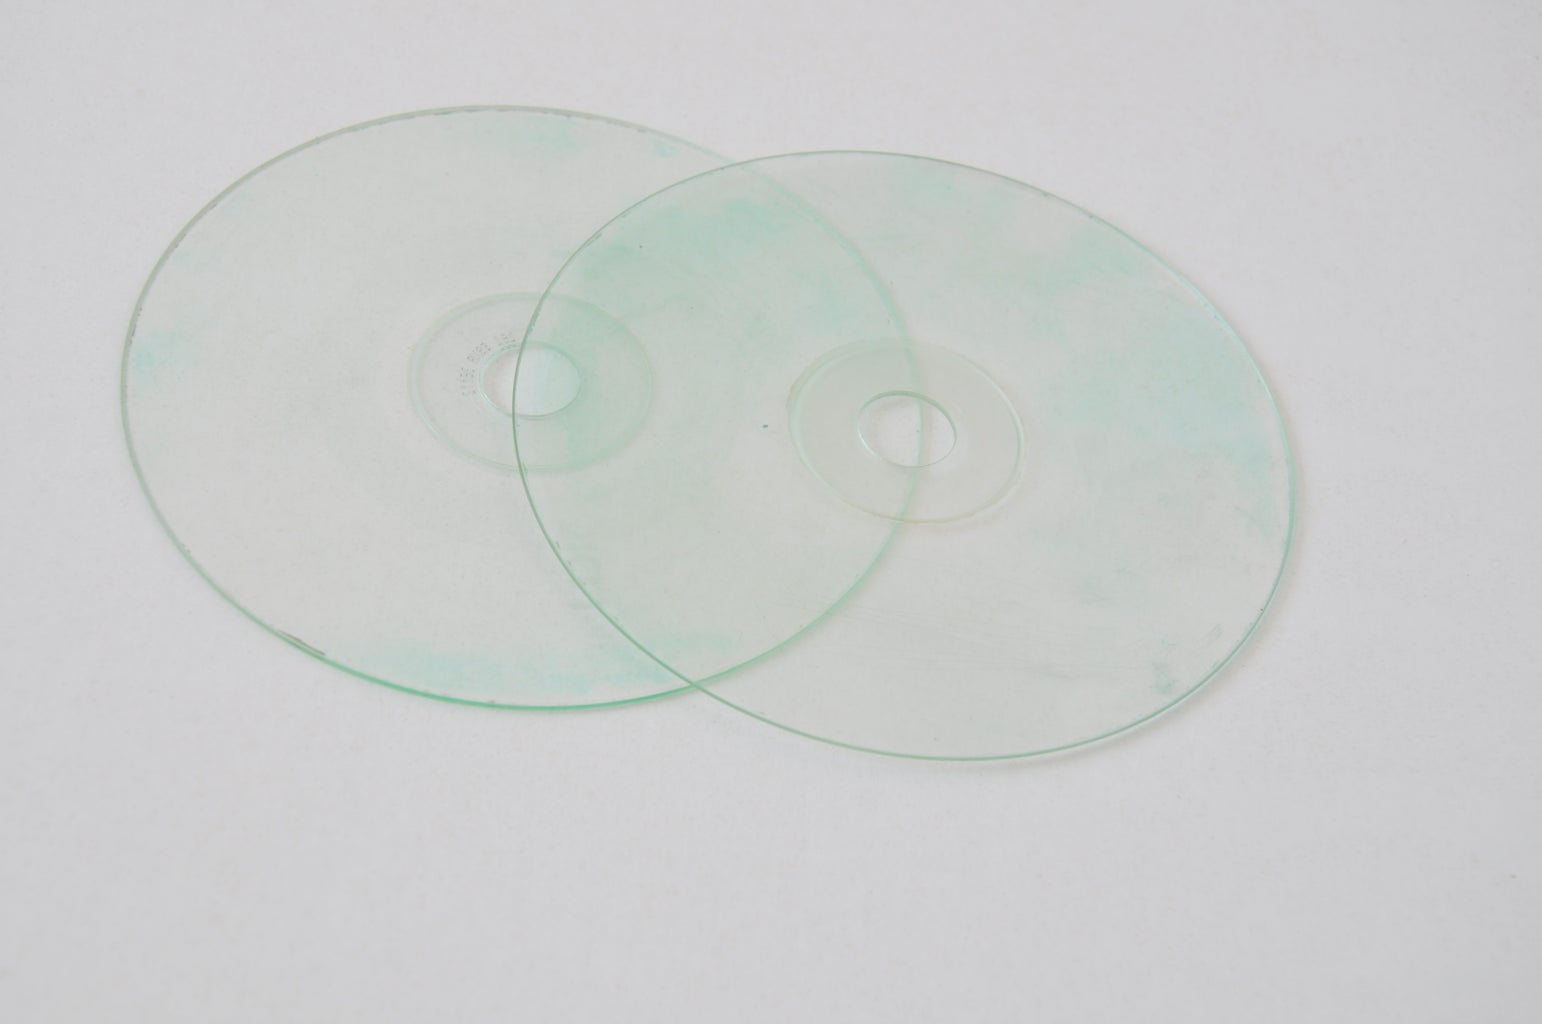 Clearing CDs